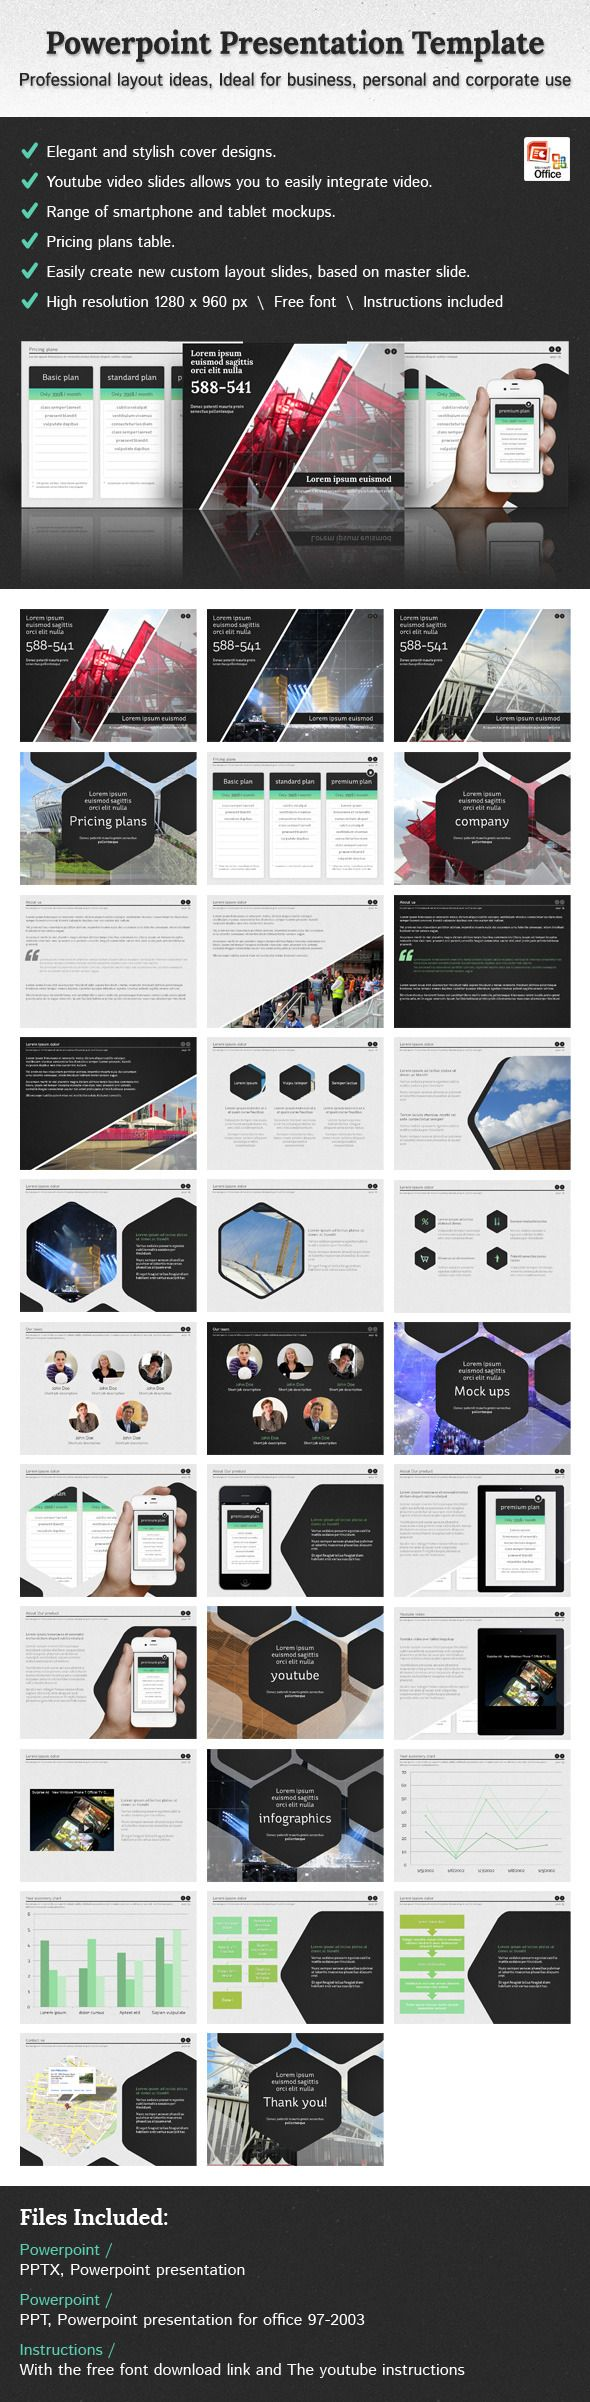 Hexagon - Powerpoint Presentation Template  #ppt download  • Click here to download ! http://graphicriver.net/item/hexagon-powerpoint-presentation-template/3738126?s_rank=773&ref=pxcr